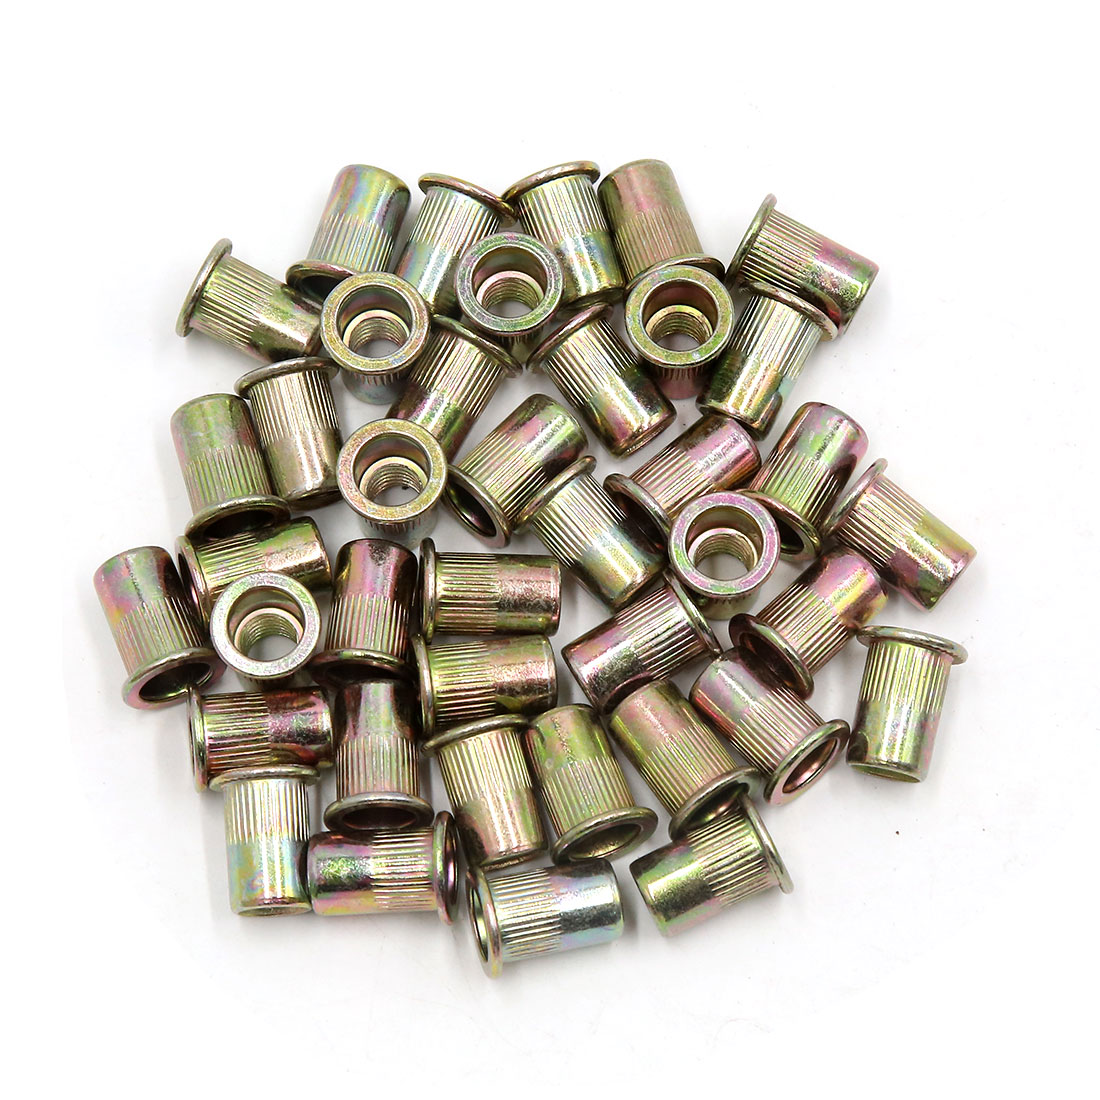 40 Pcs Copper Tone Metal Car Rivet Nut Flat Head Insert Nutsert 5/16-18 UNC